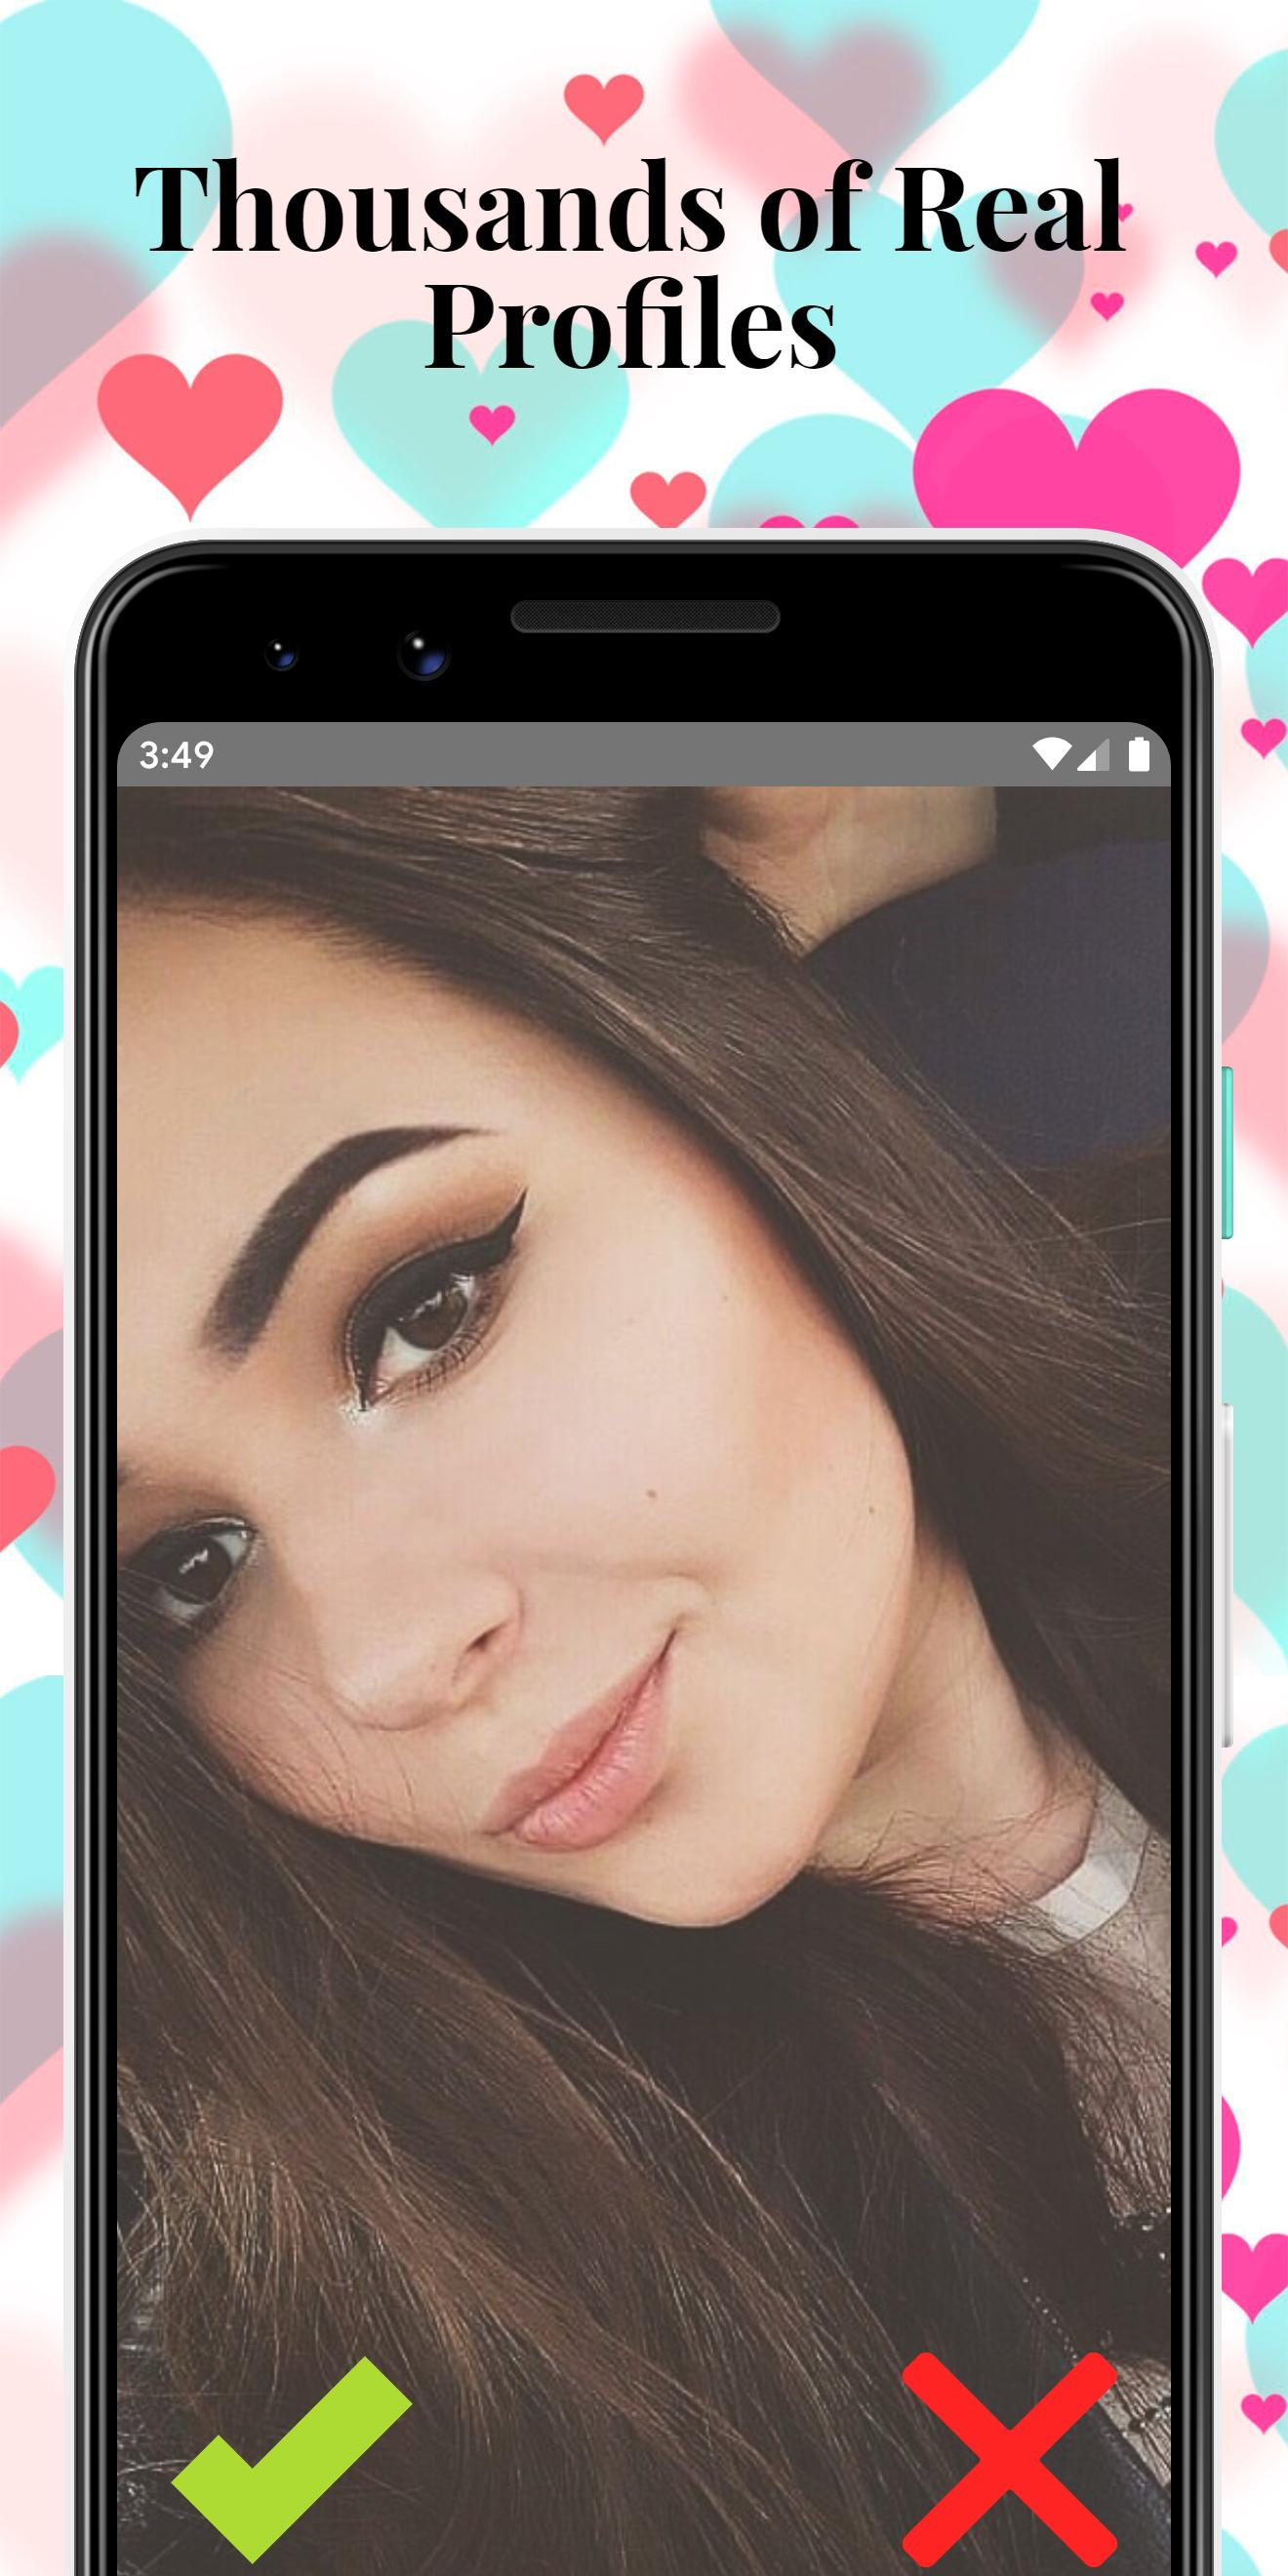 Lisa Dating App Only Real Profiles For Android Apk Download